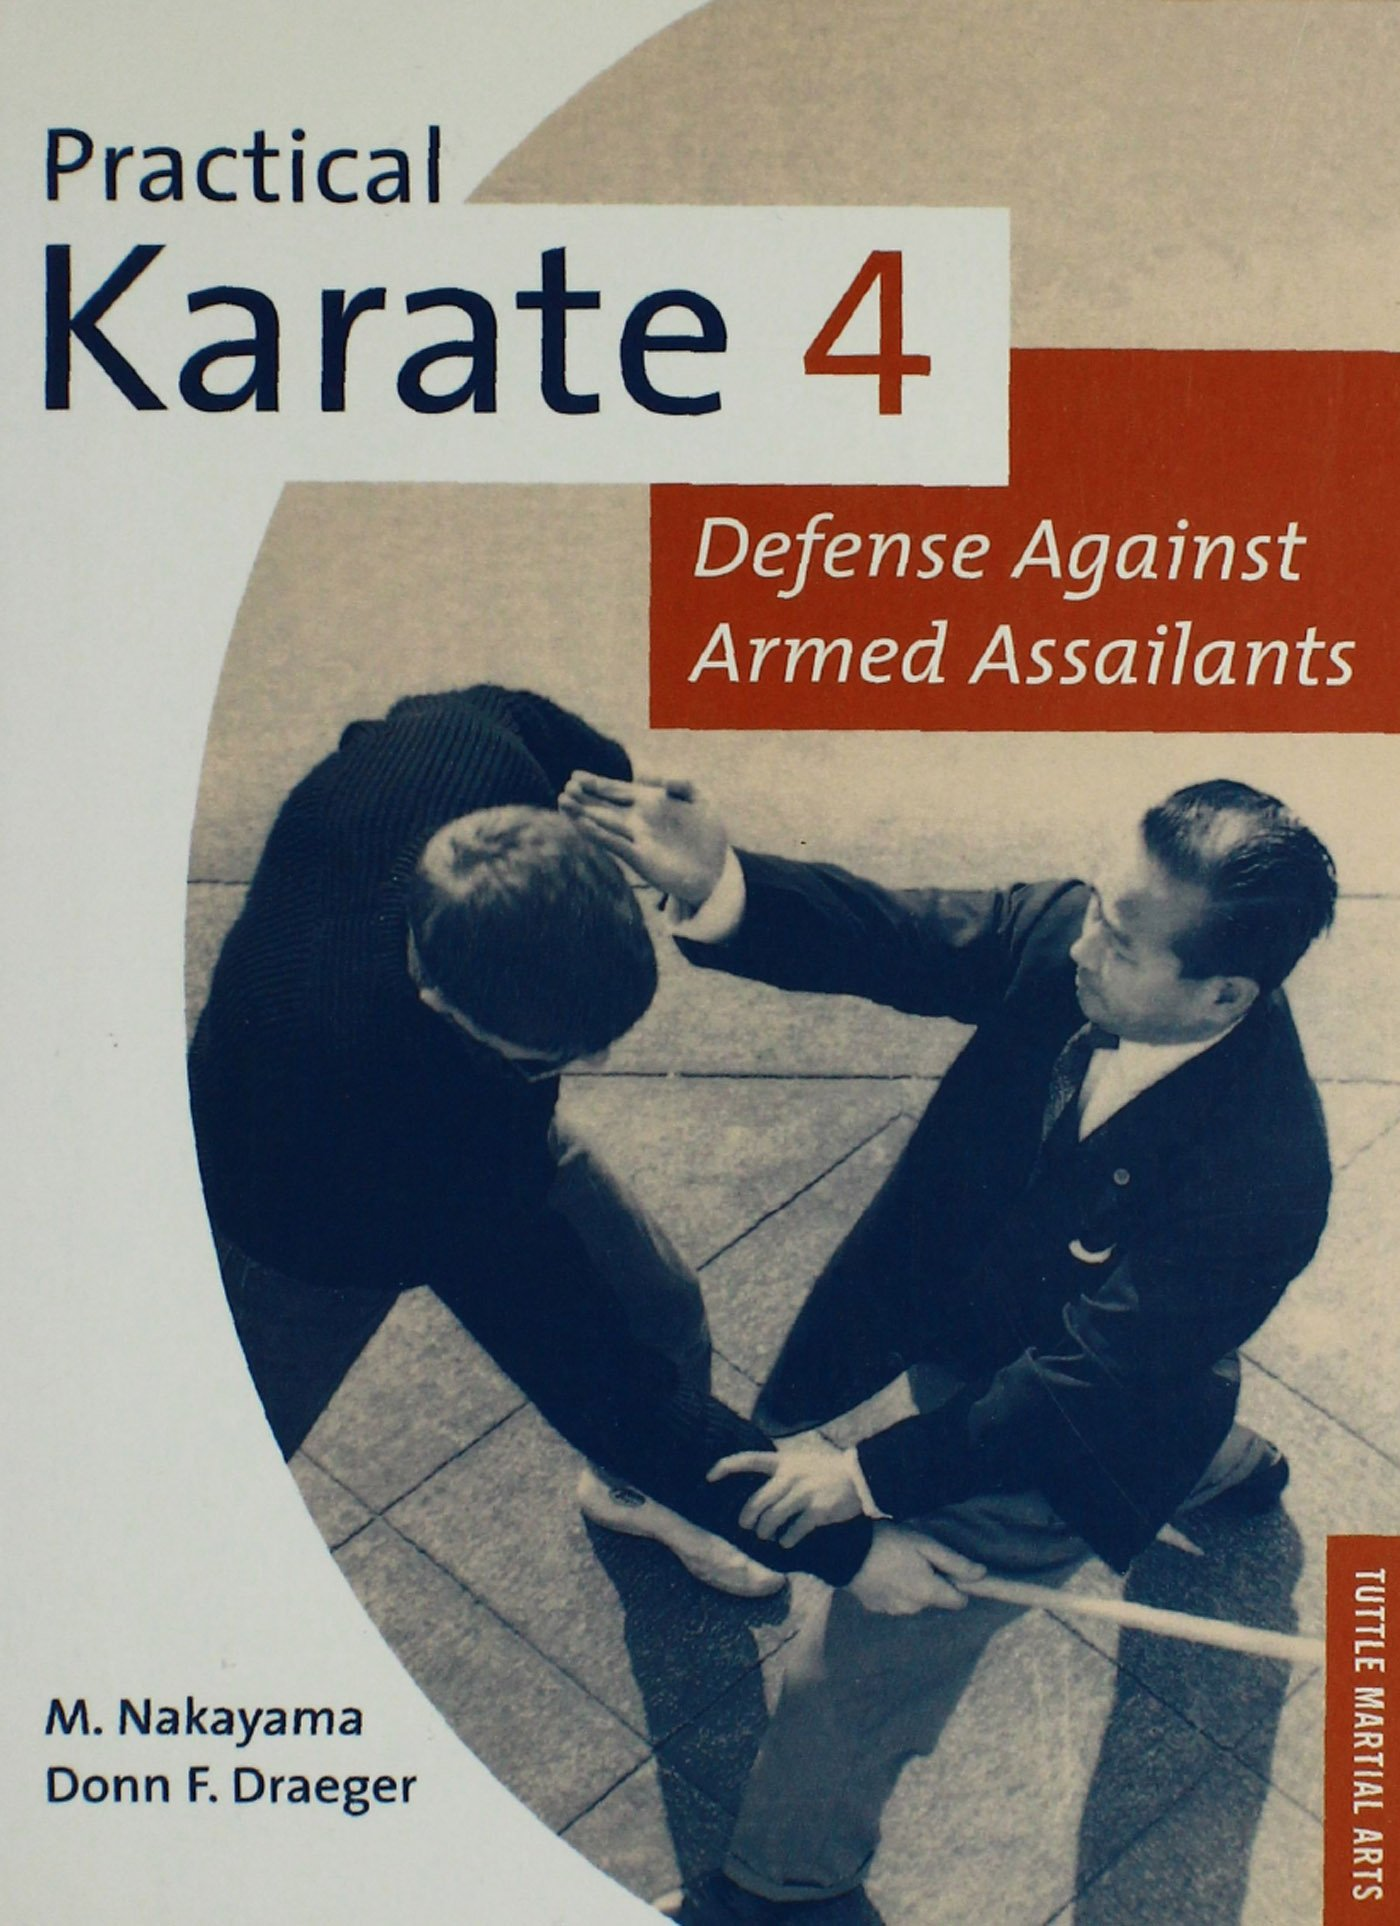 Practical Karate Volume 4 Defense Agains  Defense Against Armed Assailants  Practical Karate Series   English Edition